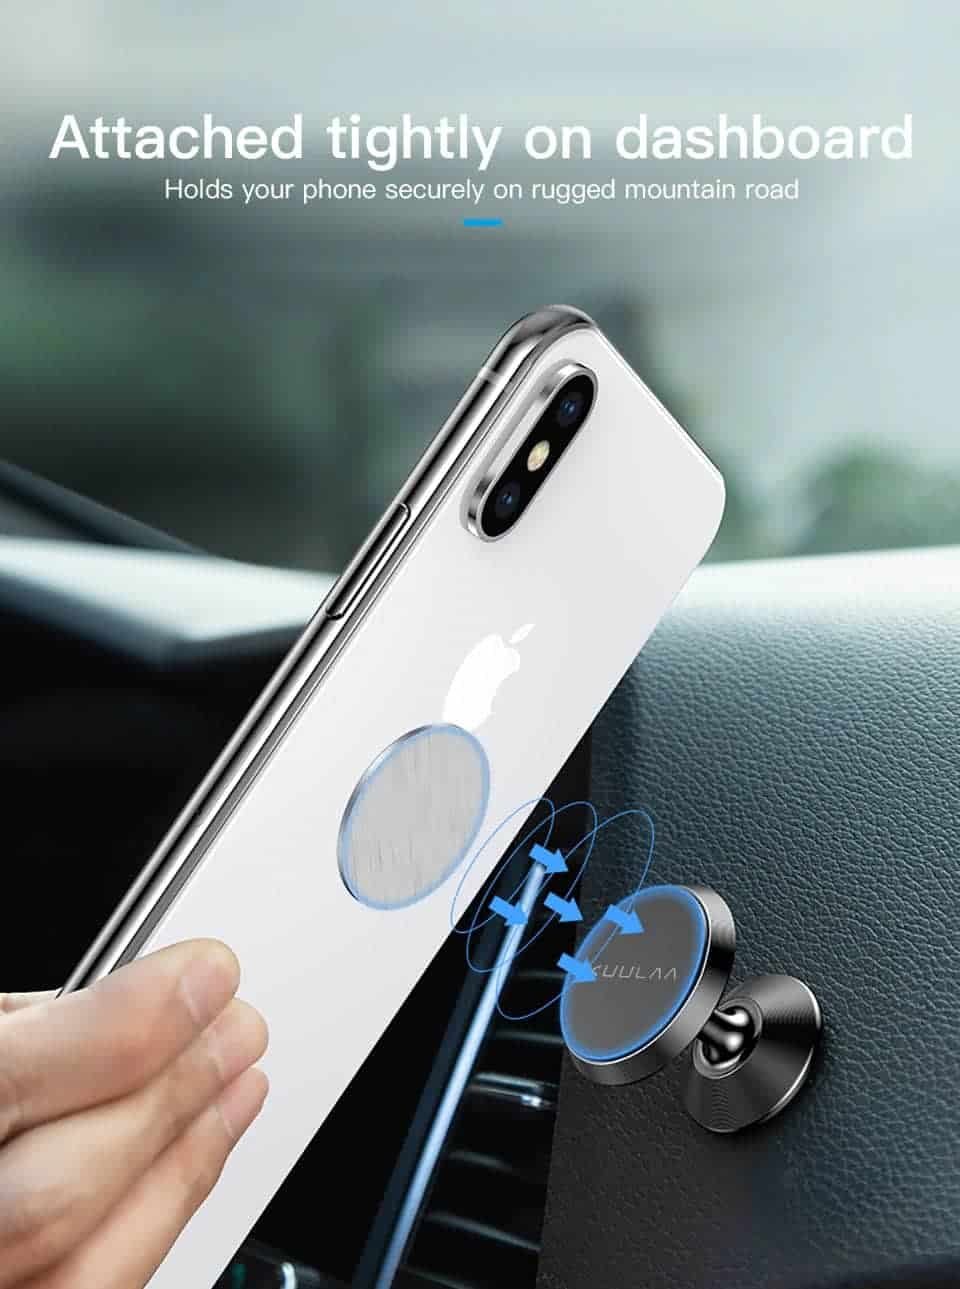 KUULAA Car Phone Holder Magnetic attached tightly on dashboard